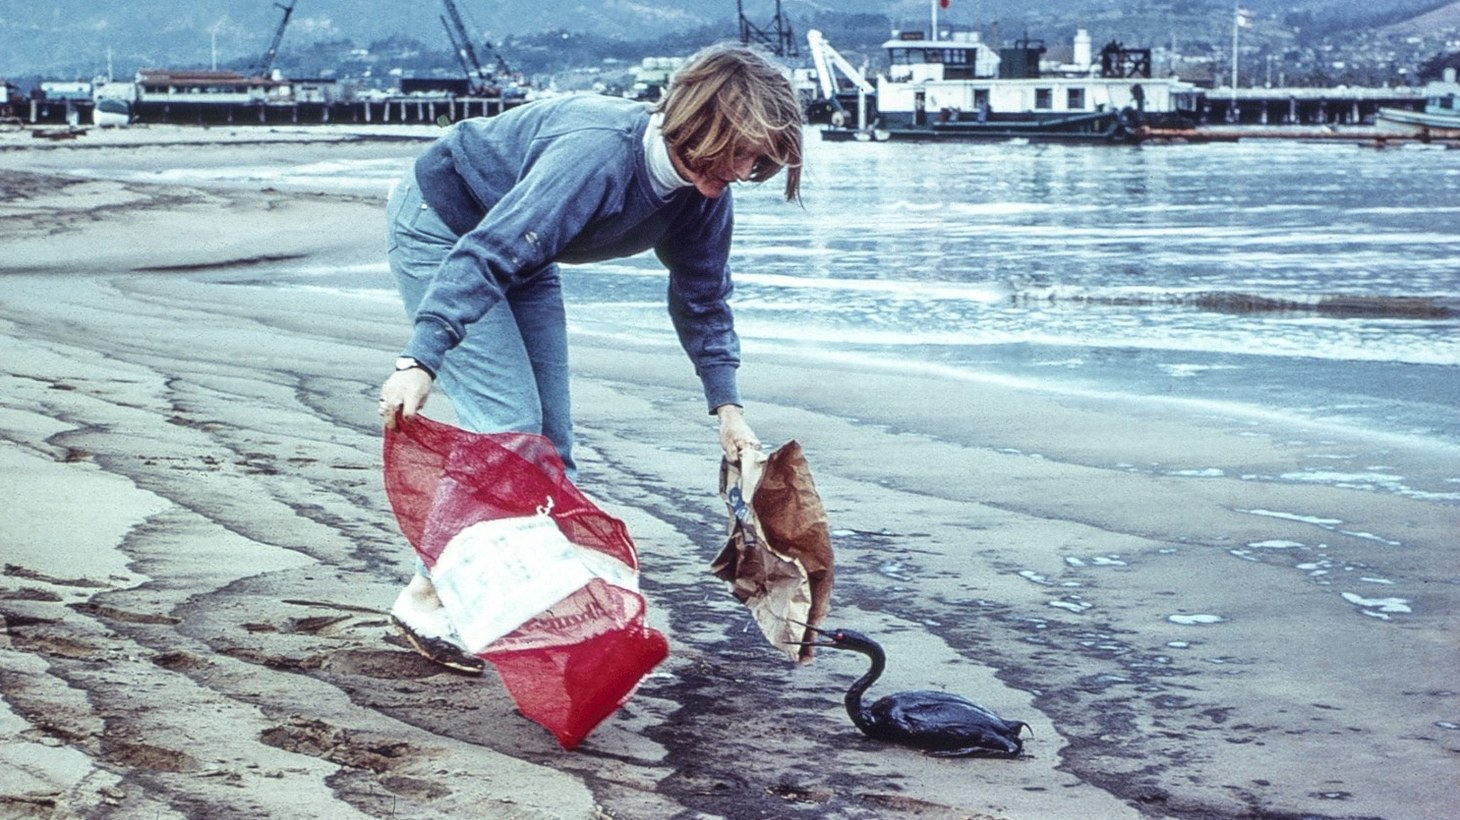 More than 3,600 seabirds died in the wake of the 1969 oil spill.